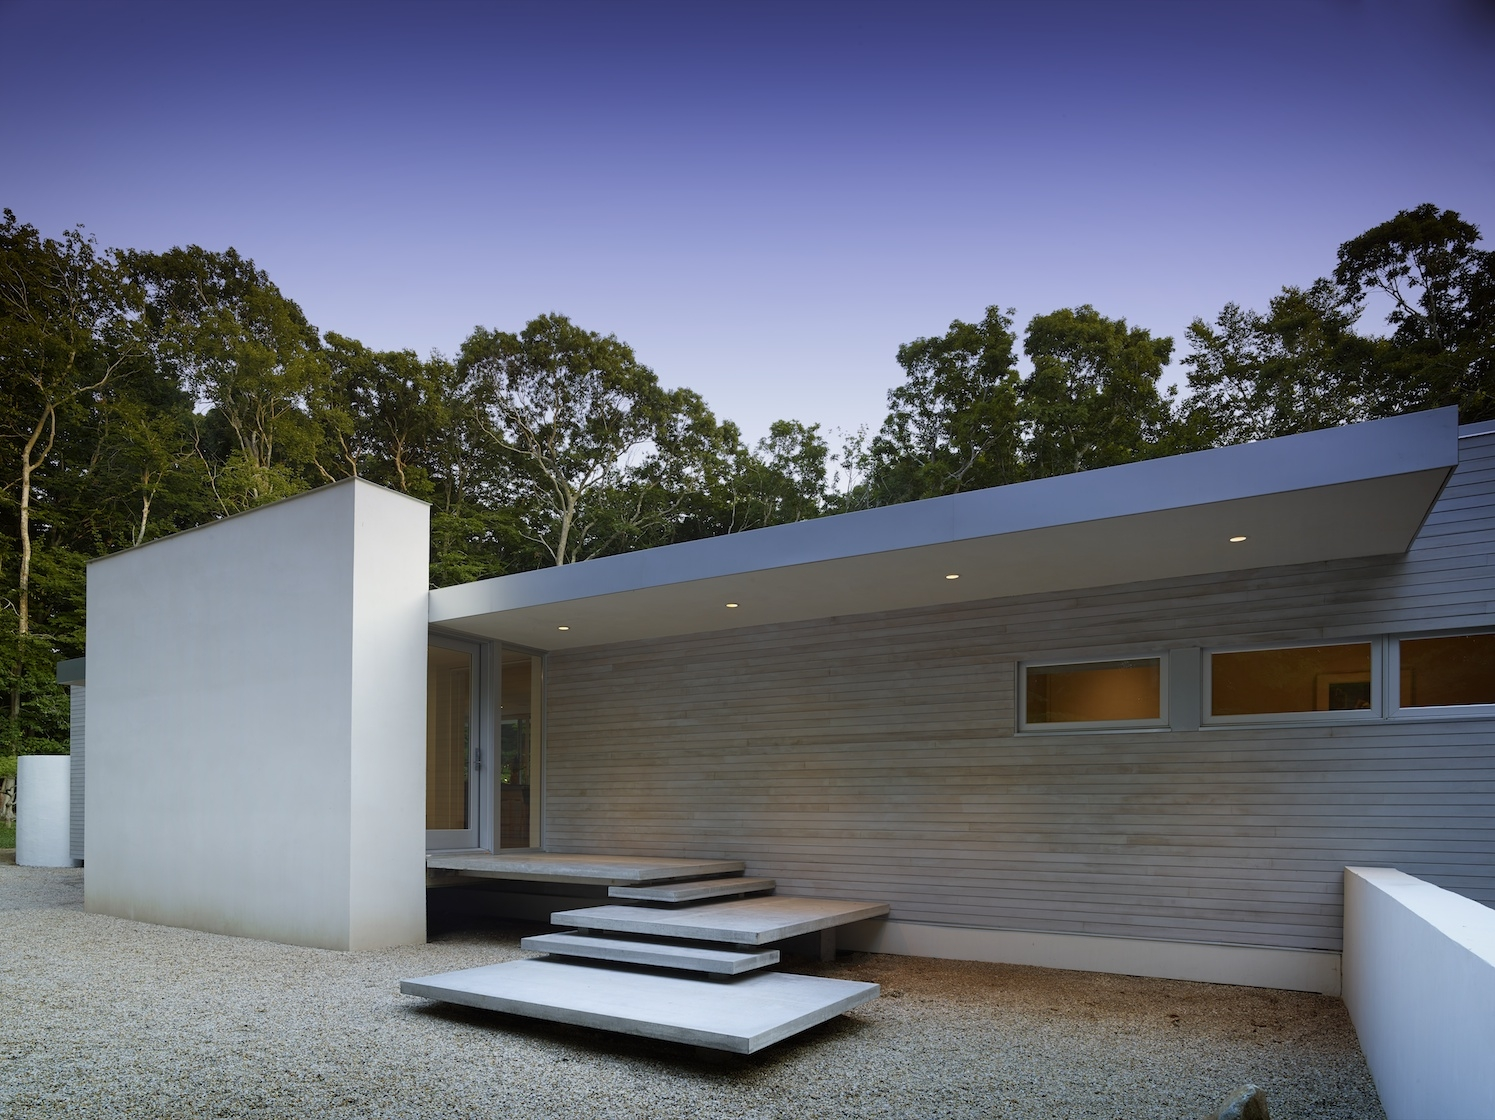 Entry Spaces Stelle Lomont Rouhani Architects Award Winning Modern Architect Hamptons